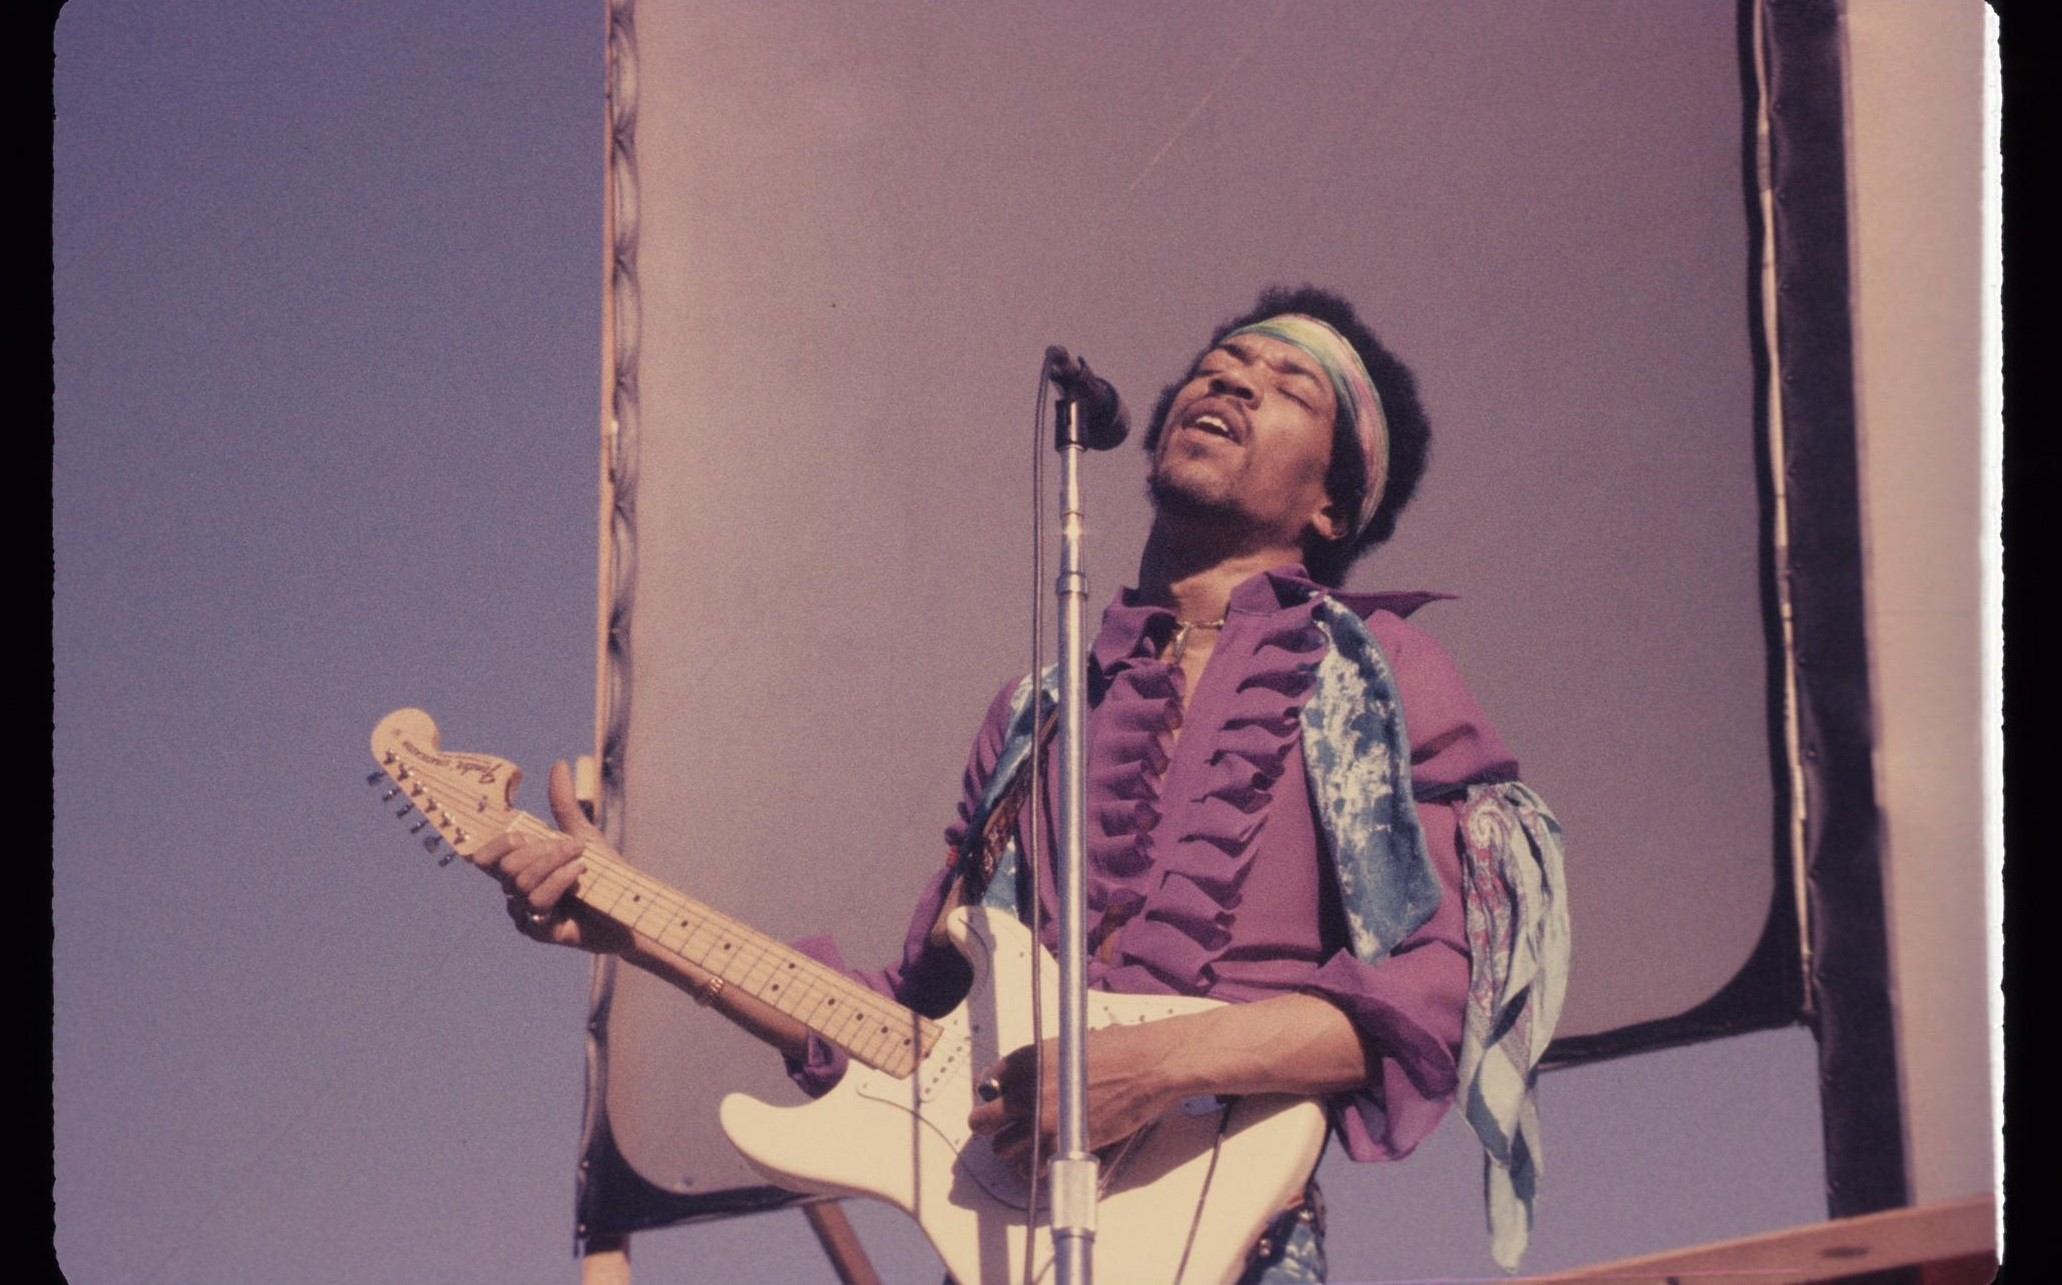 2062x1285 Burr Sinclair - jimi hendrix wallpaper pictures free -  px